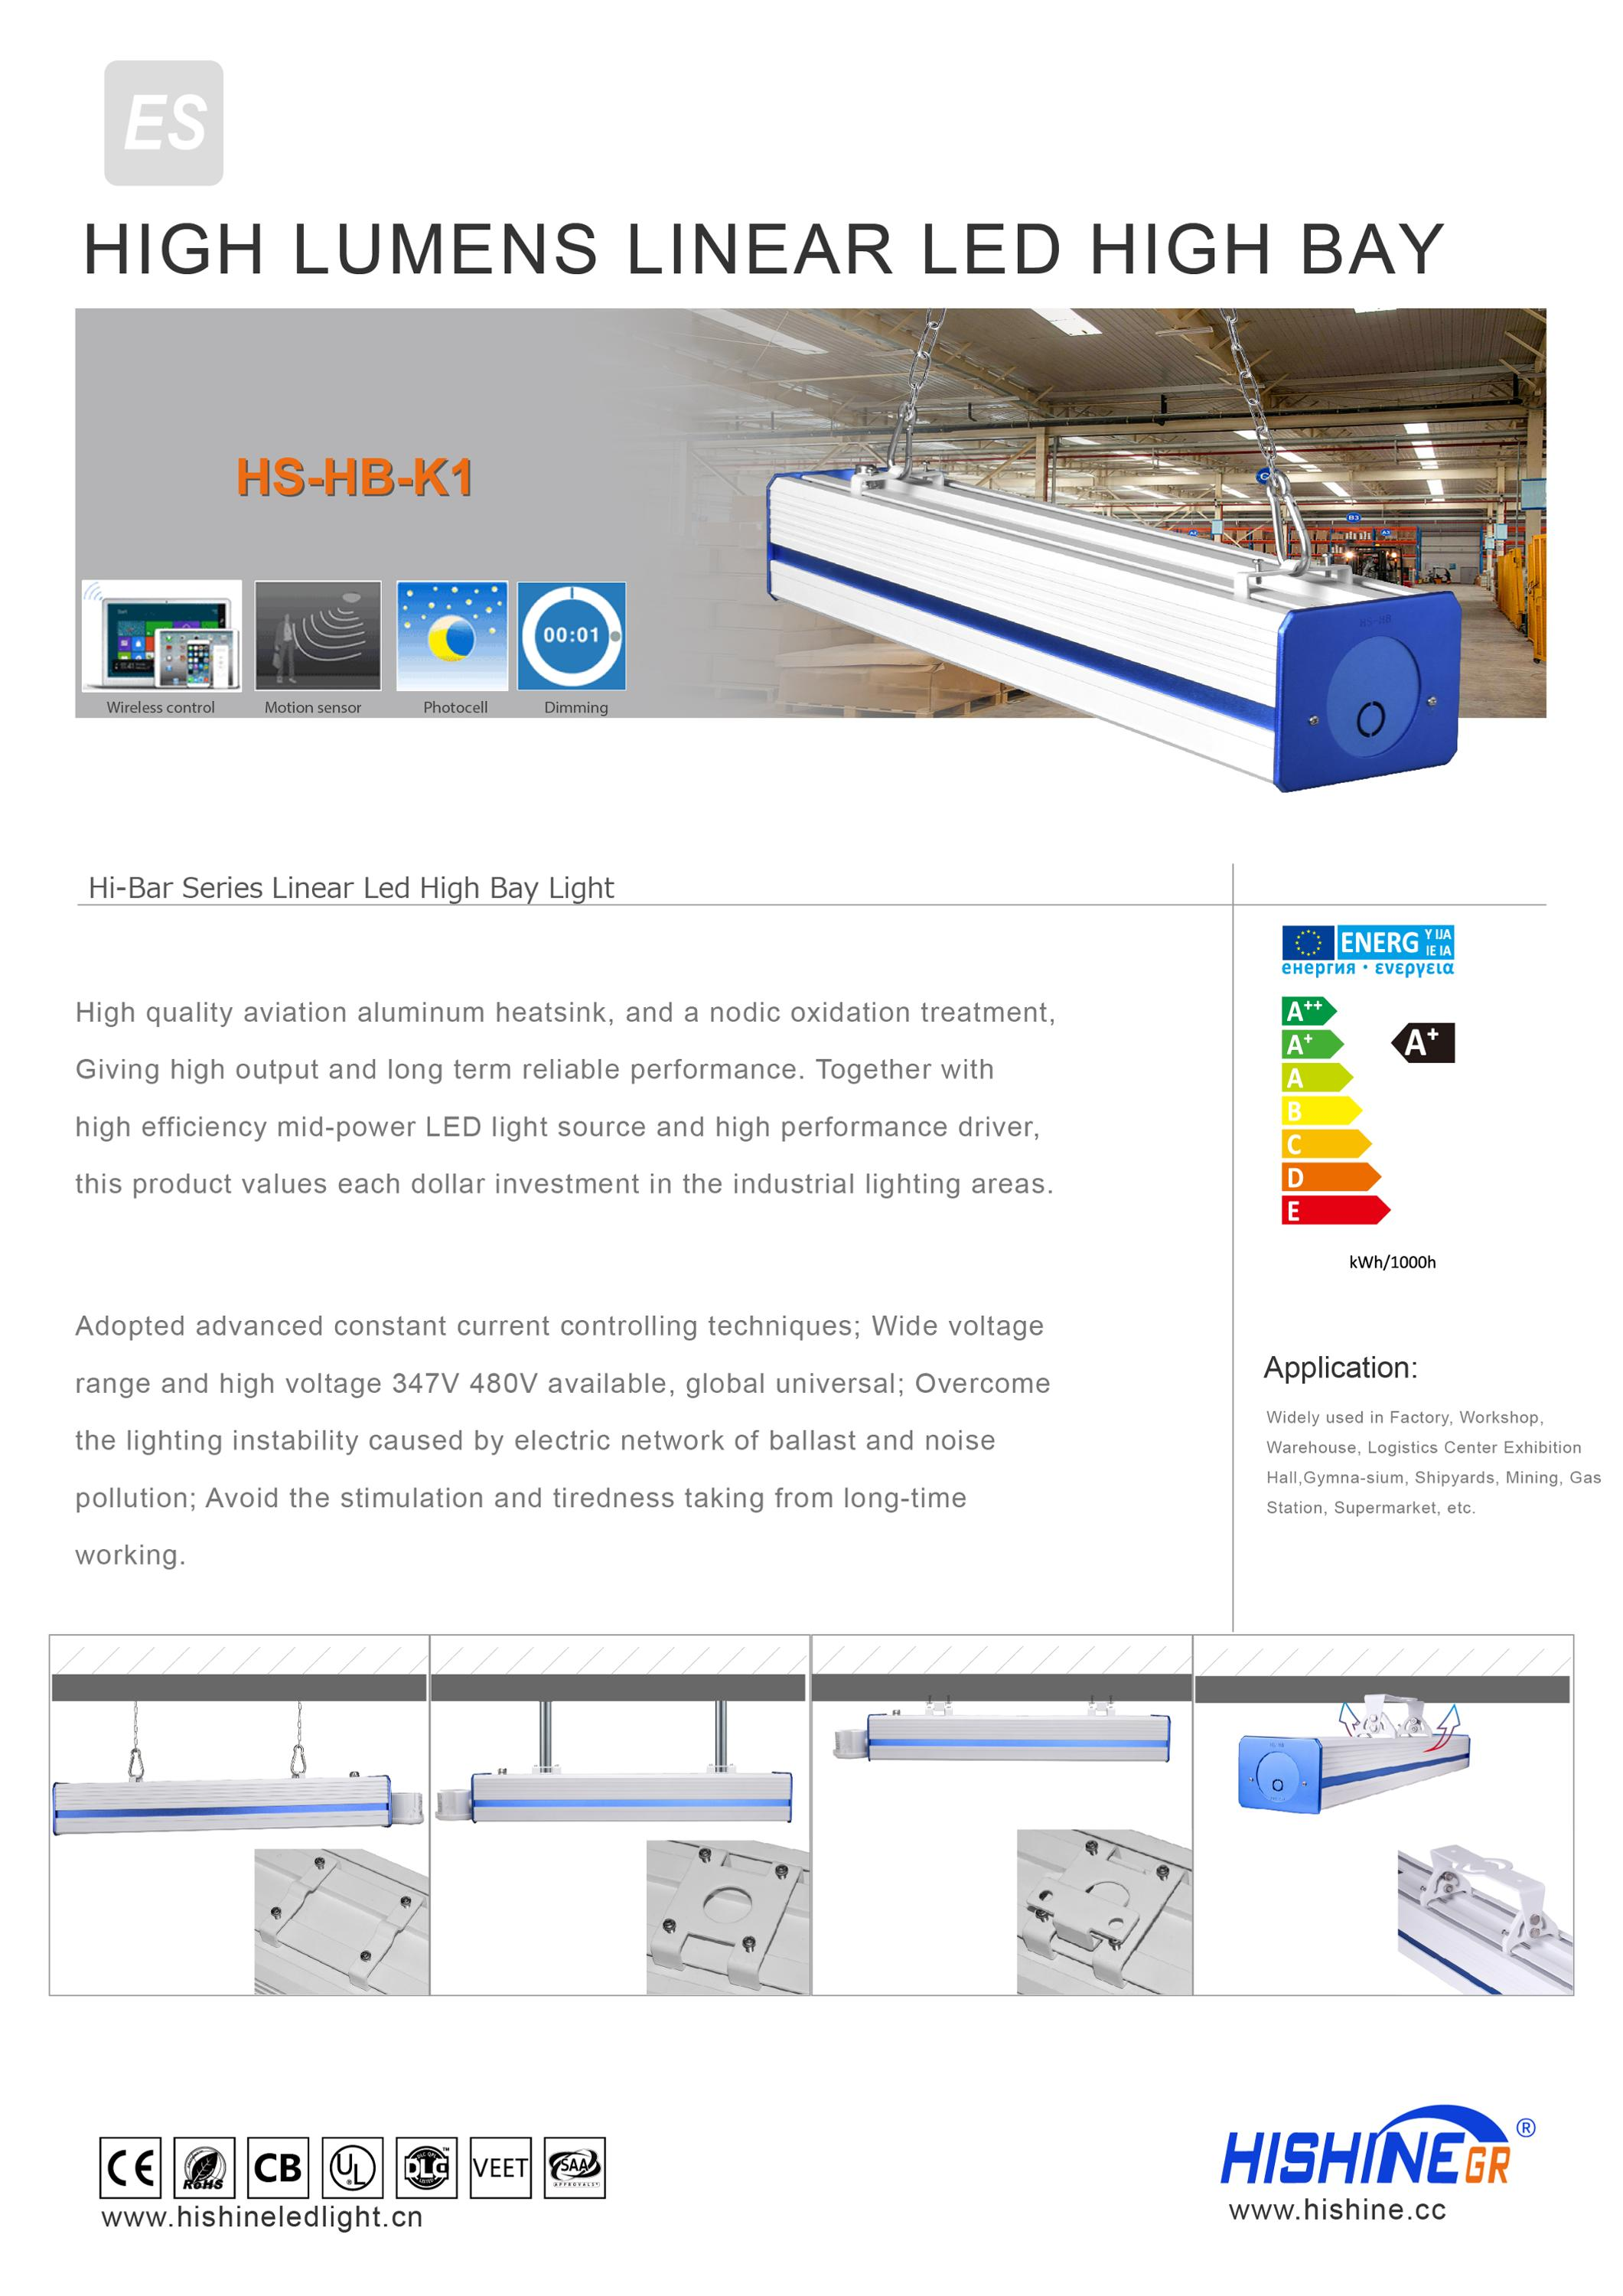 DLC UL Linear High Bay, 170lm per watt Linear High Bay LED Lamp, get high goverment rebate Under Big Sale